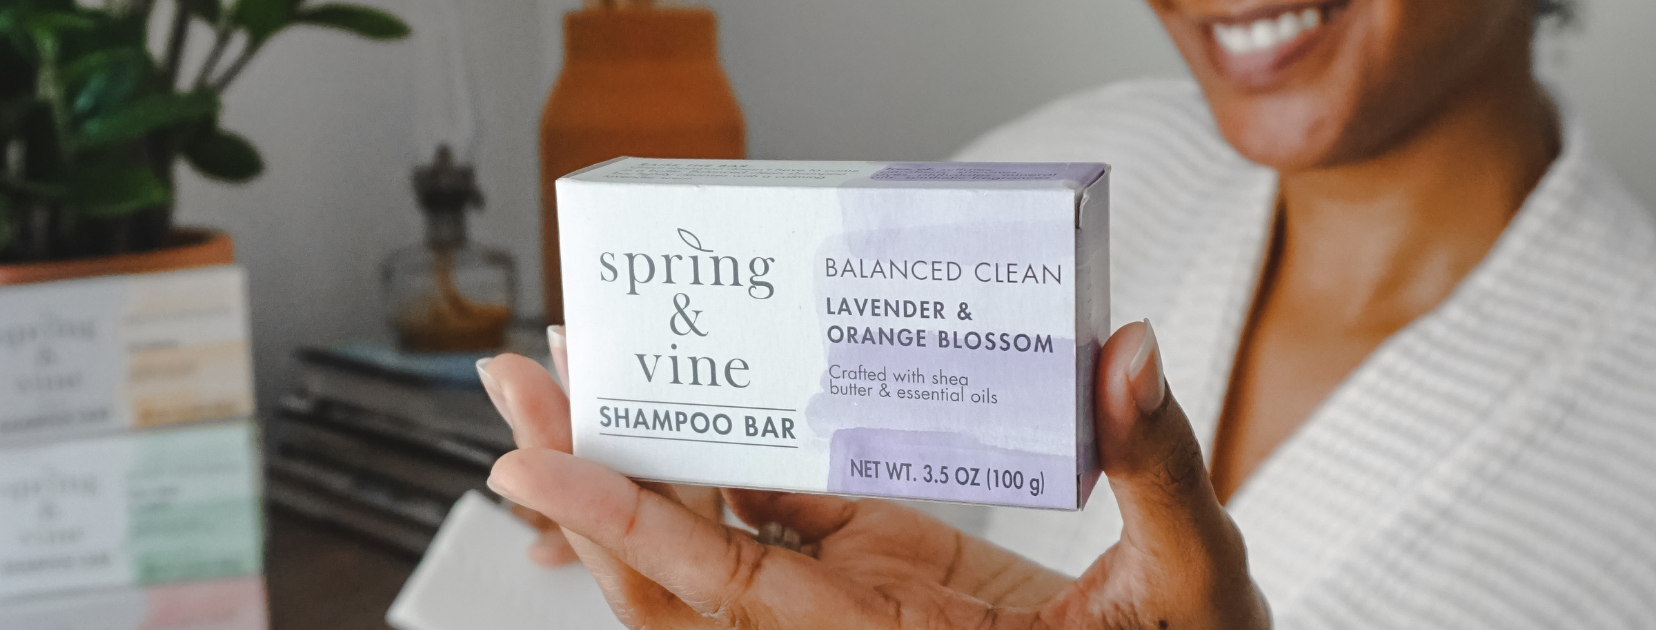 lavendar & orange blossom shampoo bar by Spring & Vine available at Target